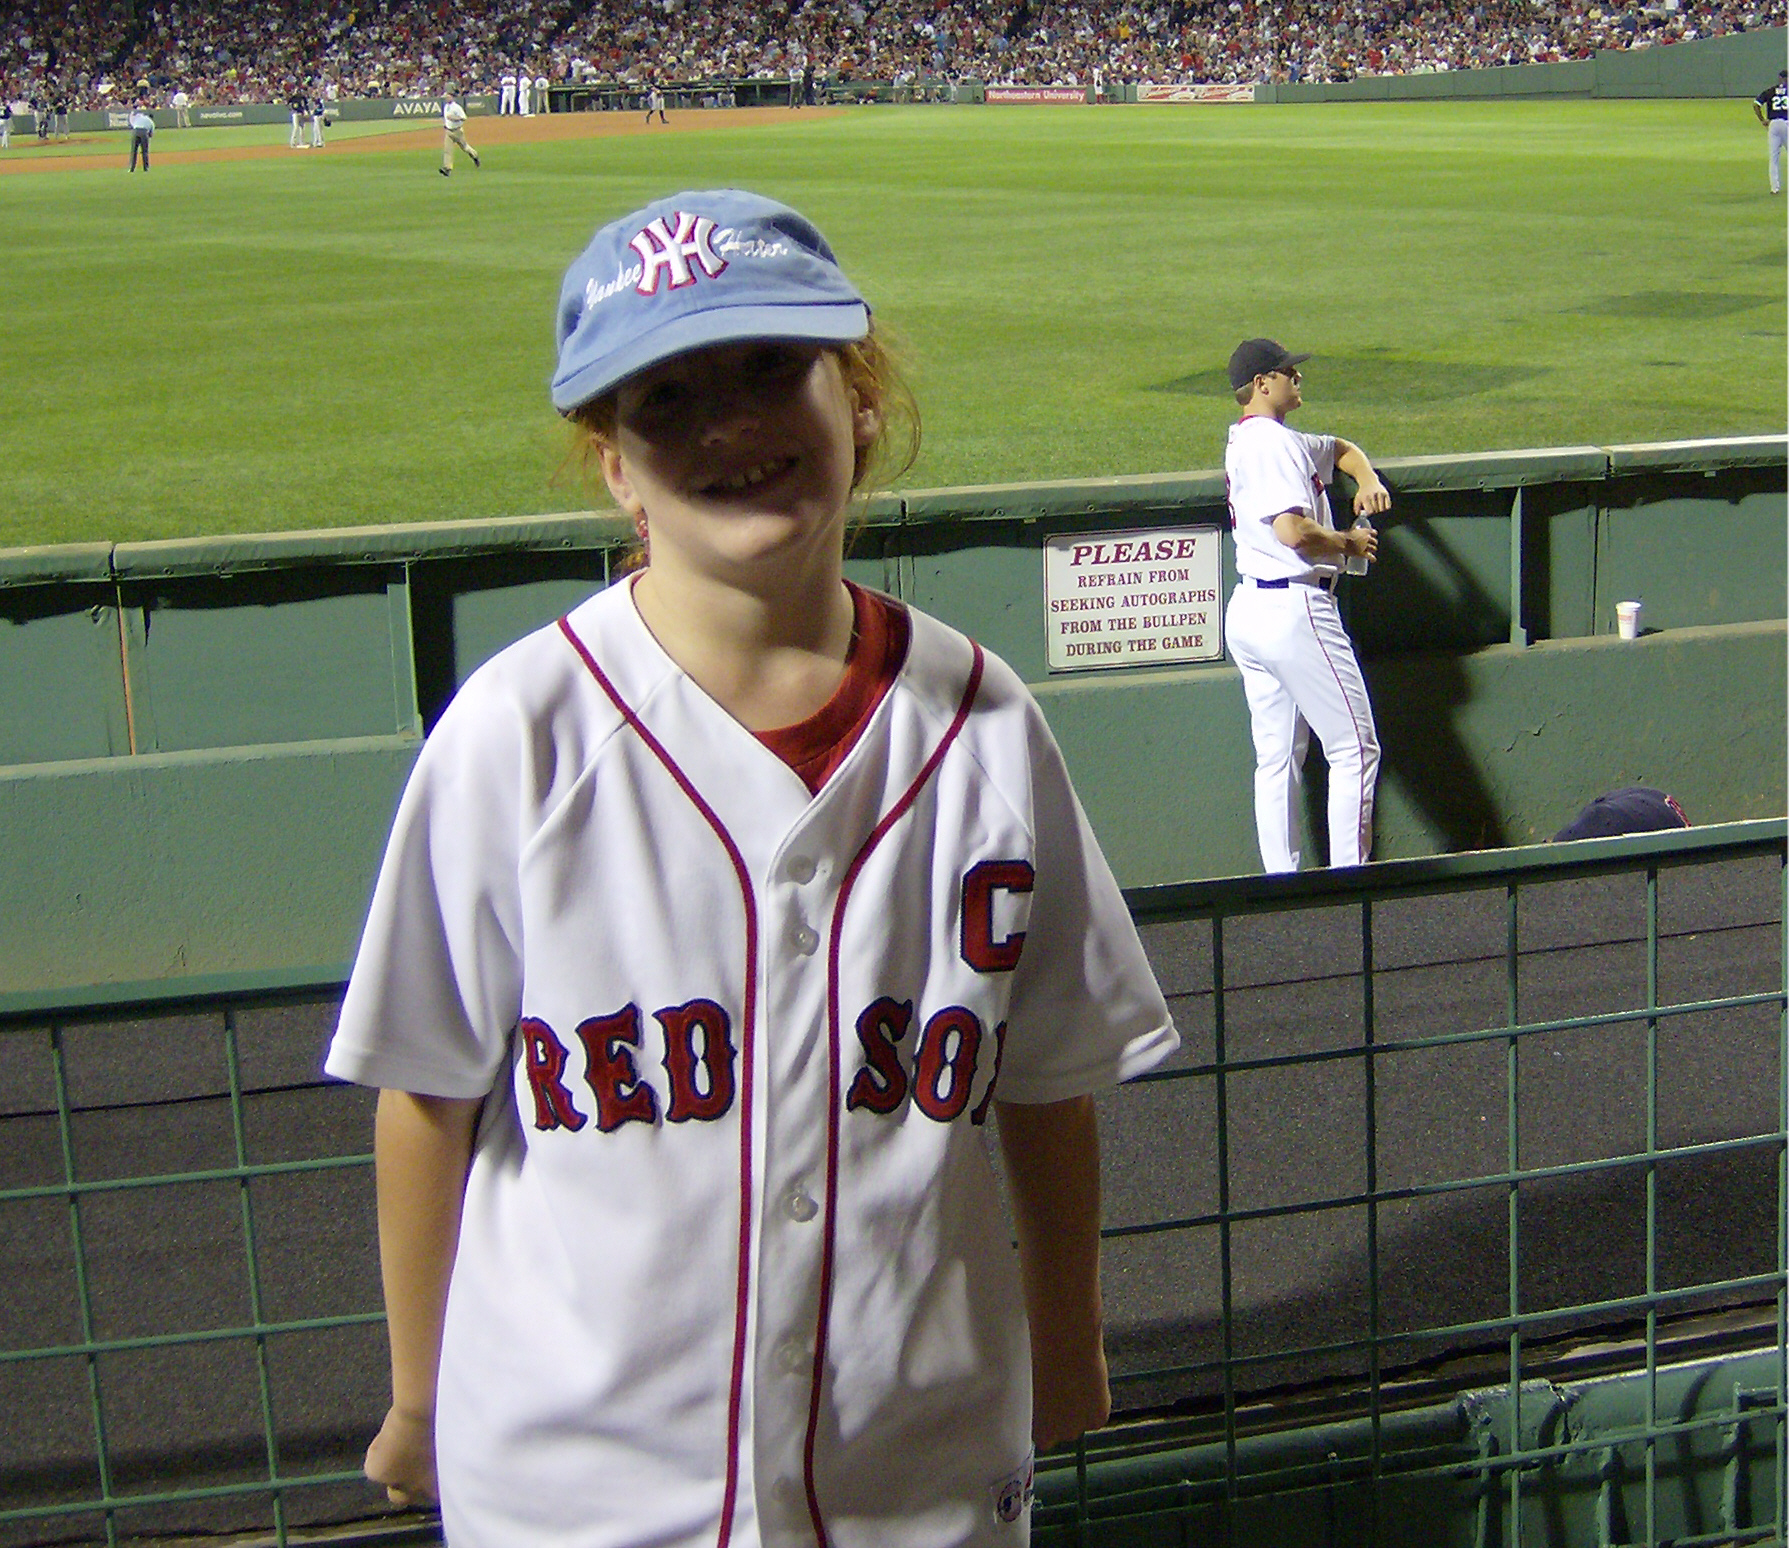 Victoria and Papelbon cropped.jpg